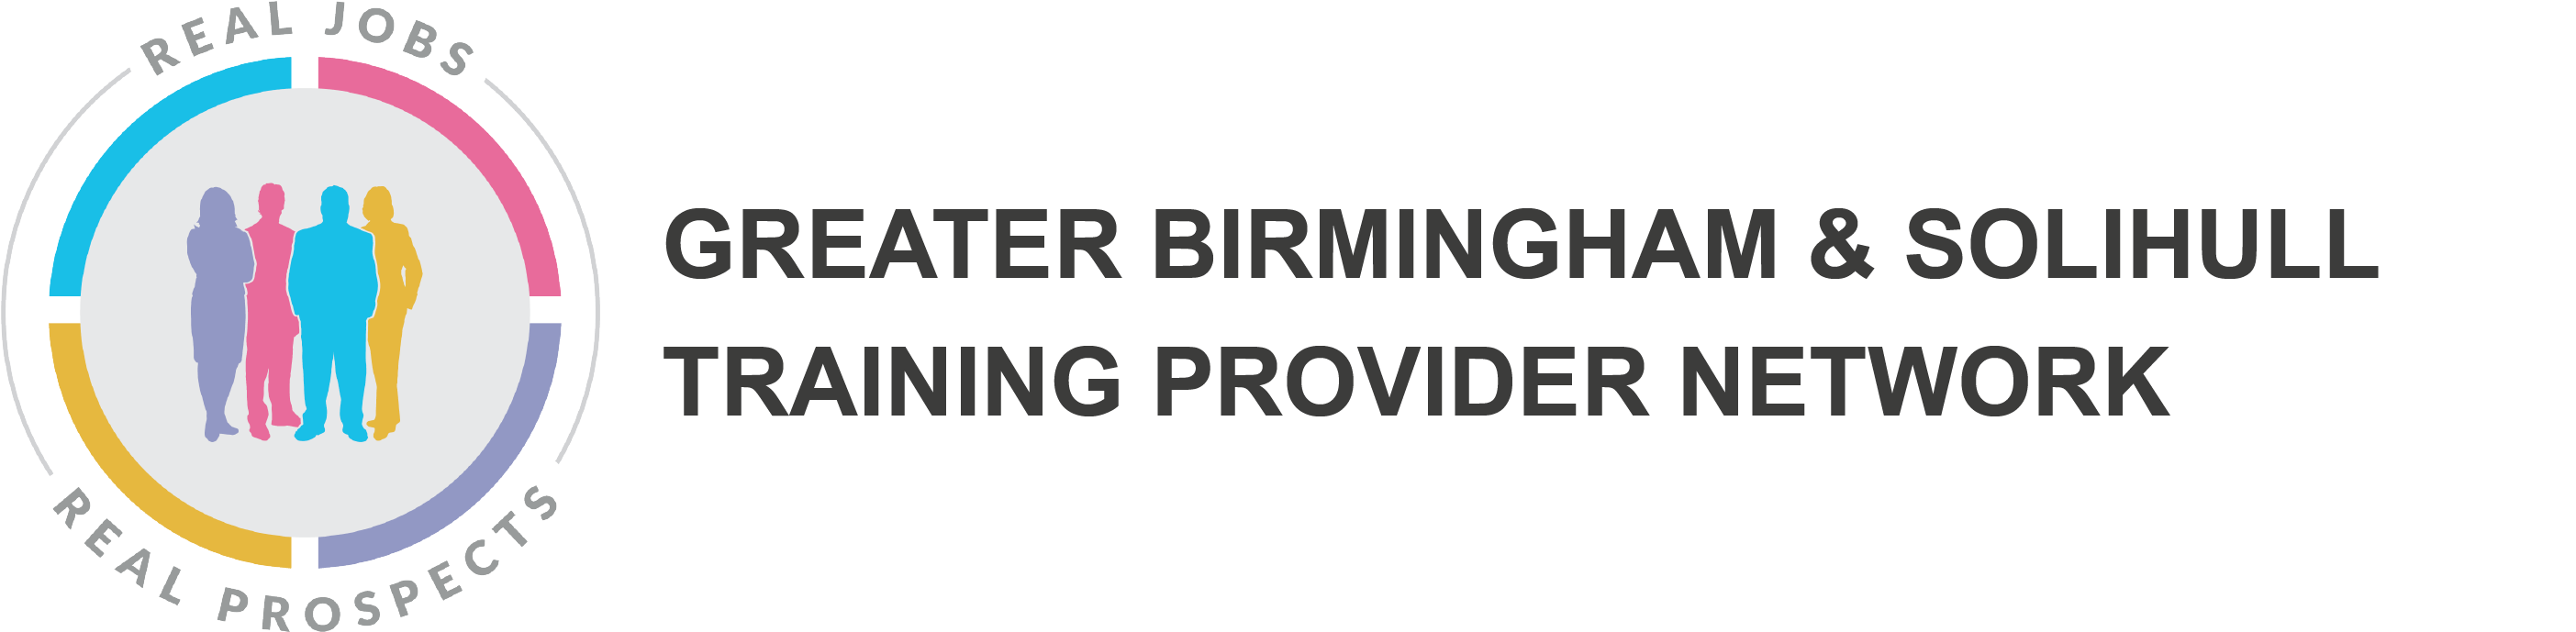 Greater Birmingham & Solihull Training Provider Network